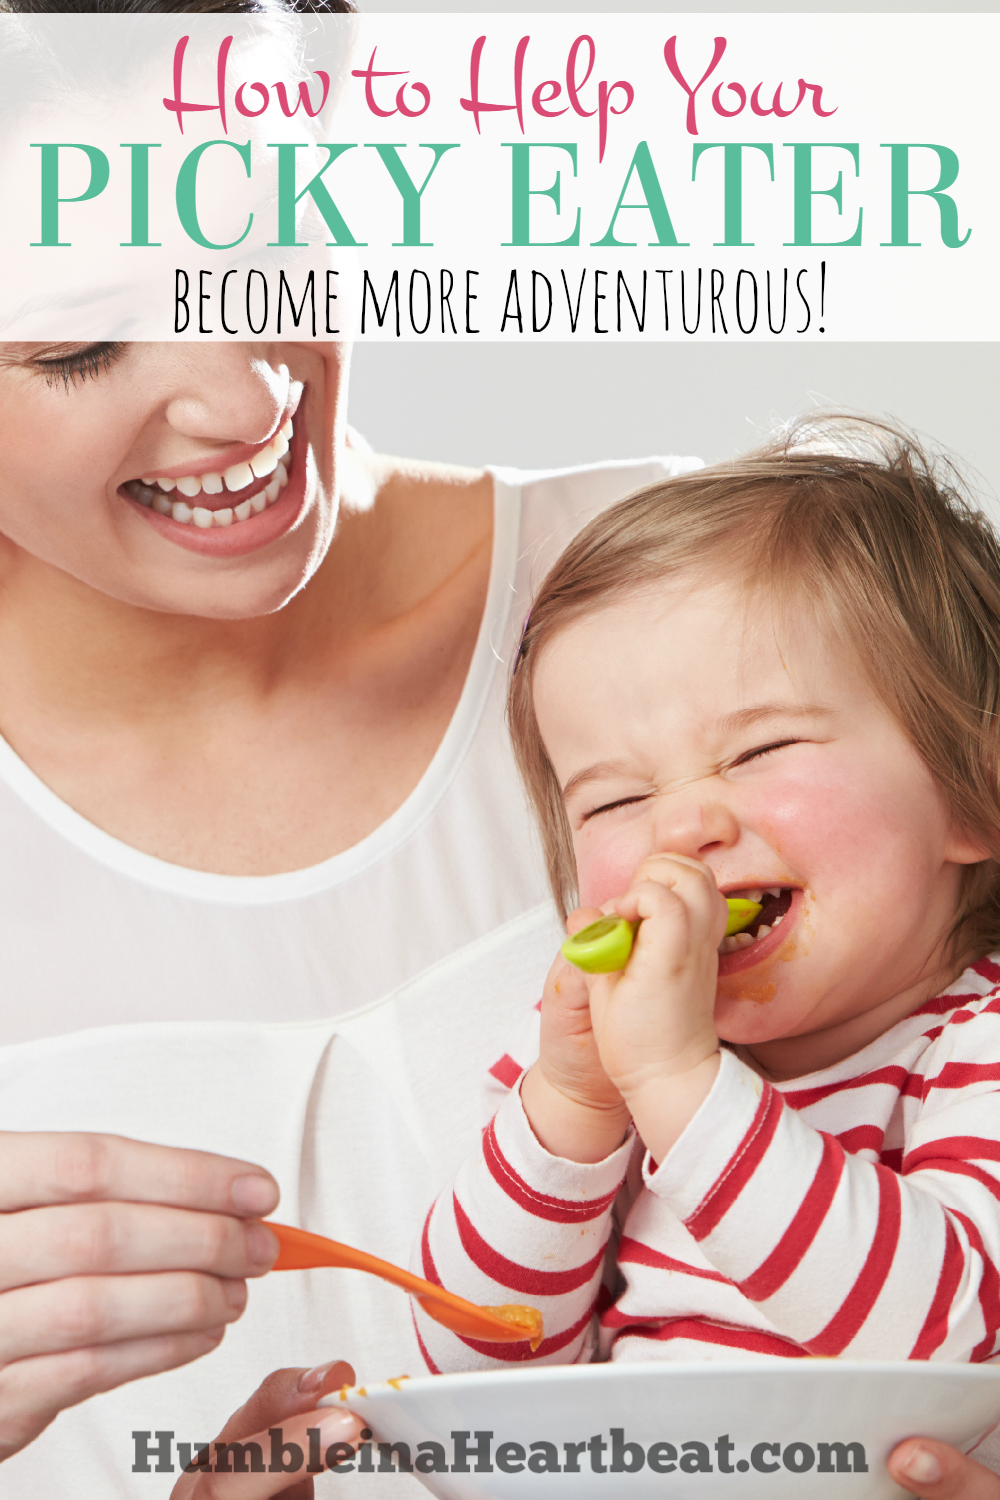 A picky eater can be turned into a food connoisseur before your very eyes if you implement healthy eating habits in your home. Find out all the ways you can make changes to your meals and start working on your picky child one small step at a time.